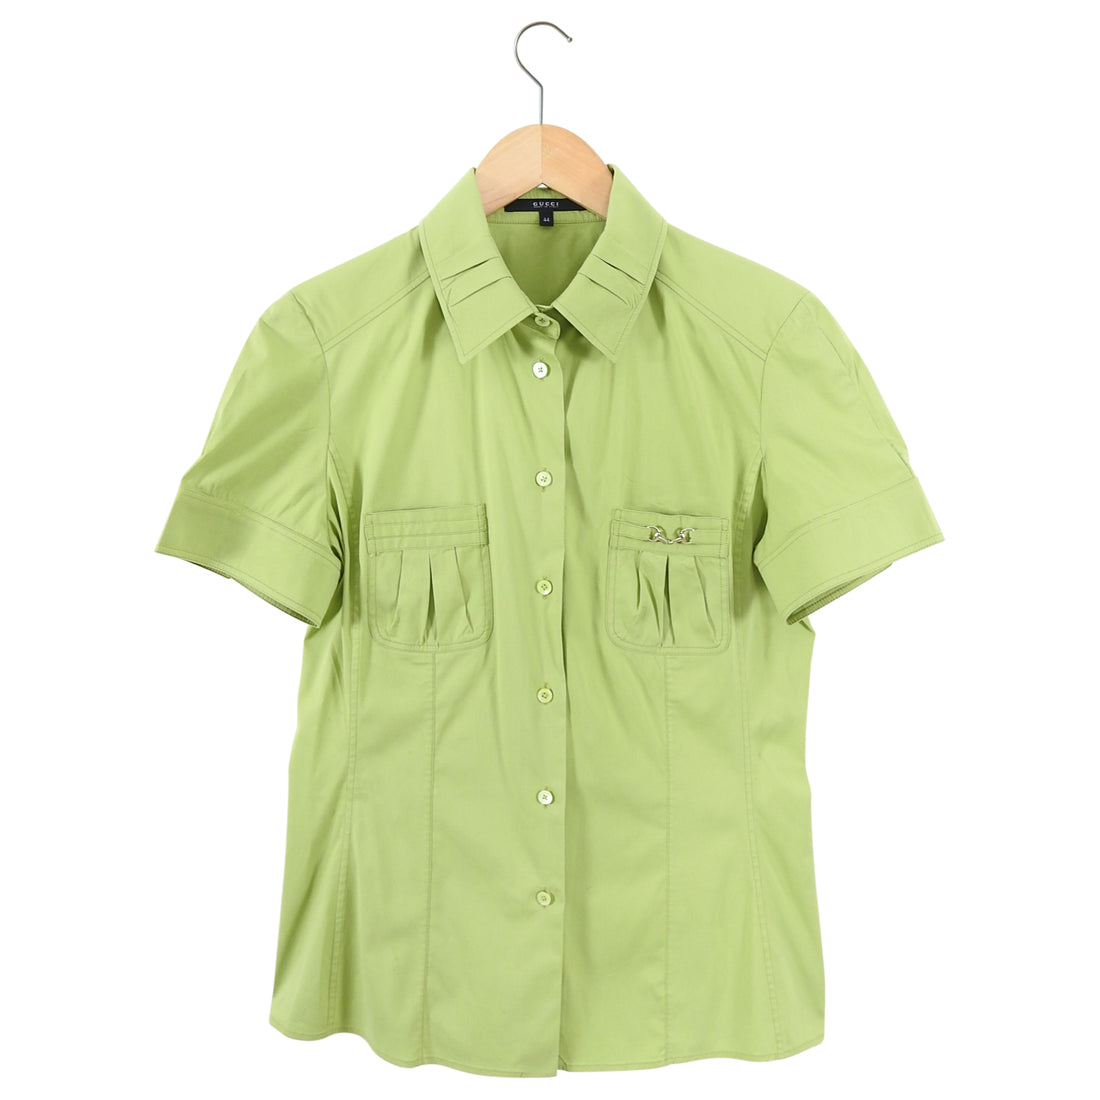 Gucci Lime Green Short Sleeve Horsebit Cotton Shirt - IT44 / 8